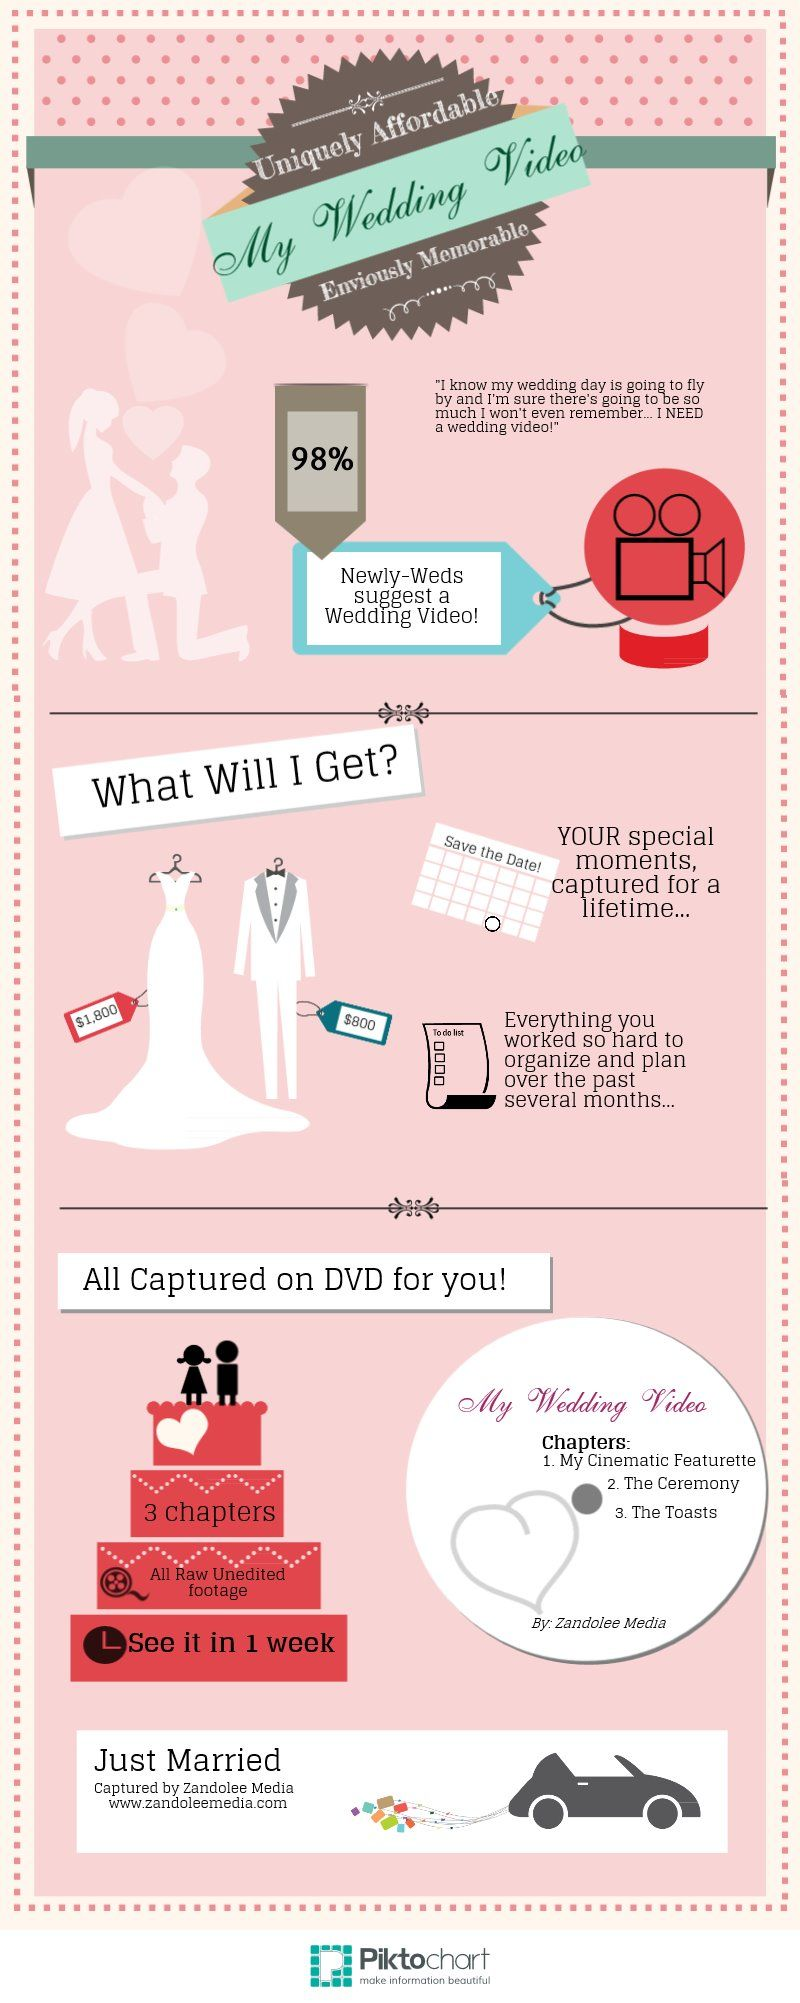 Pin By Scrumptious Couture On Wedding Planners Wedding Video Packages Wedding Videos Wedding Planning